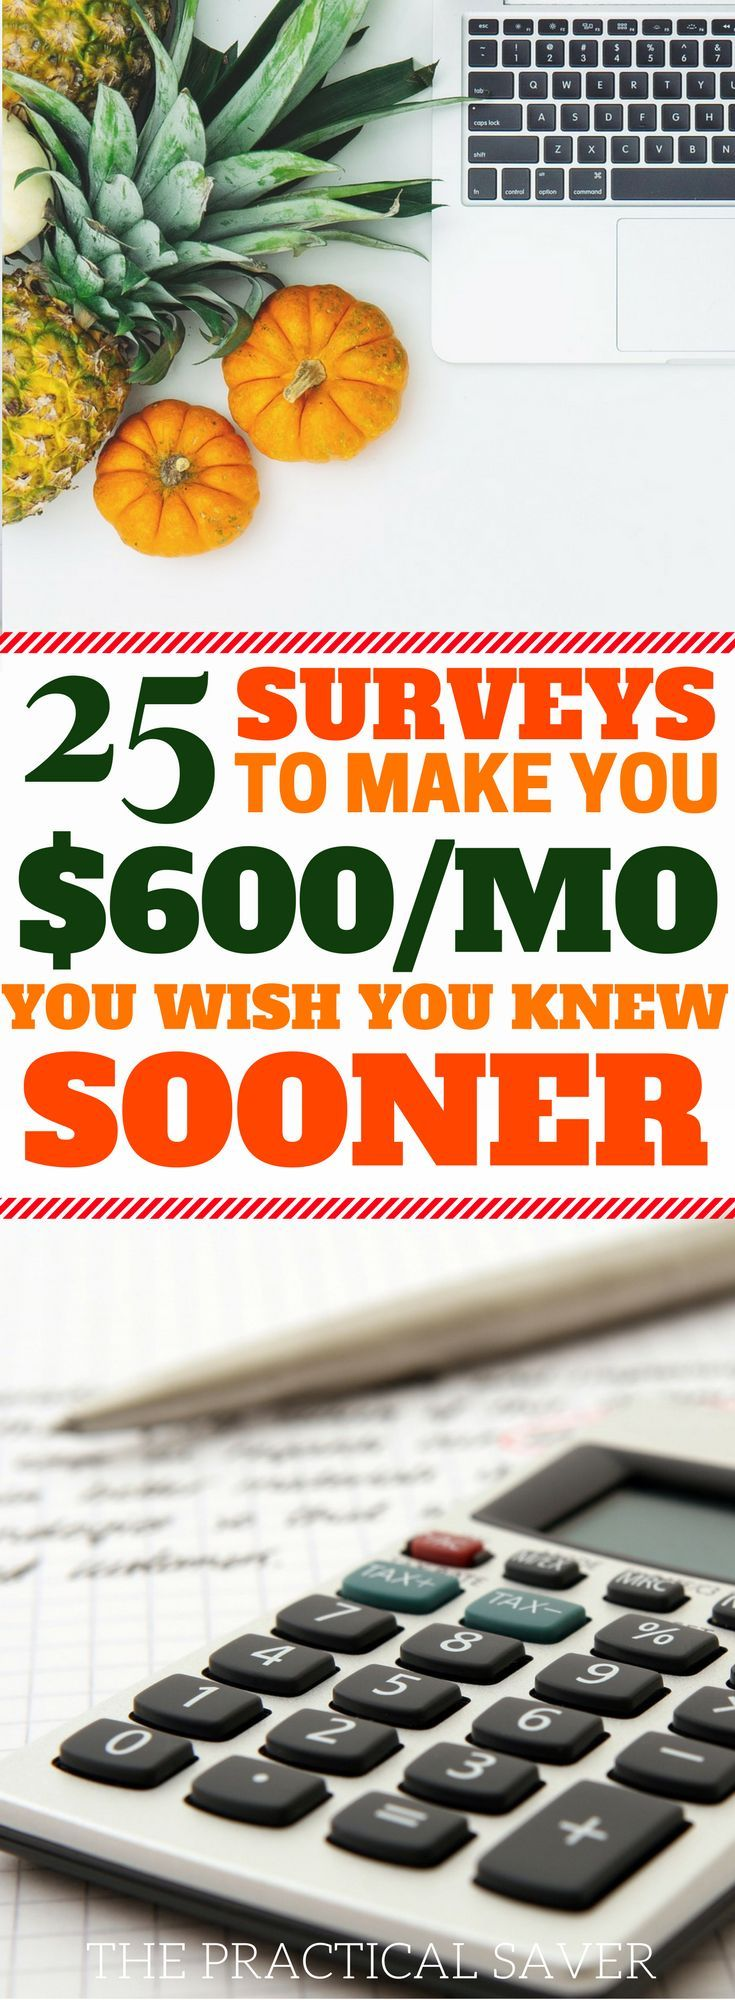 survey sites l passive income ideas l side hustles l work from home l part-time jobs l make extra money l easy job that pay well l extra money for teens l college tips hacks l  make money online